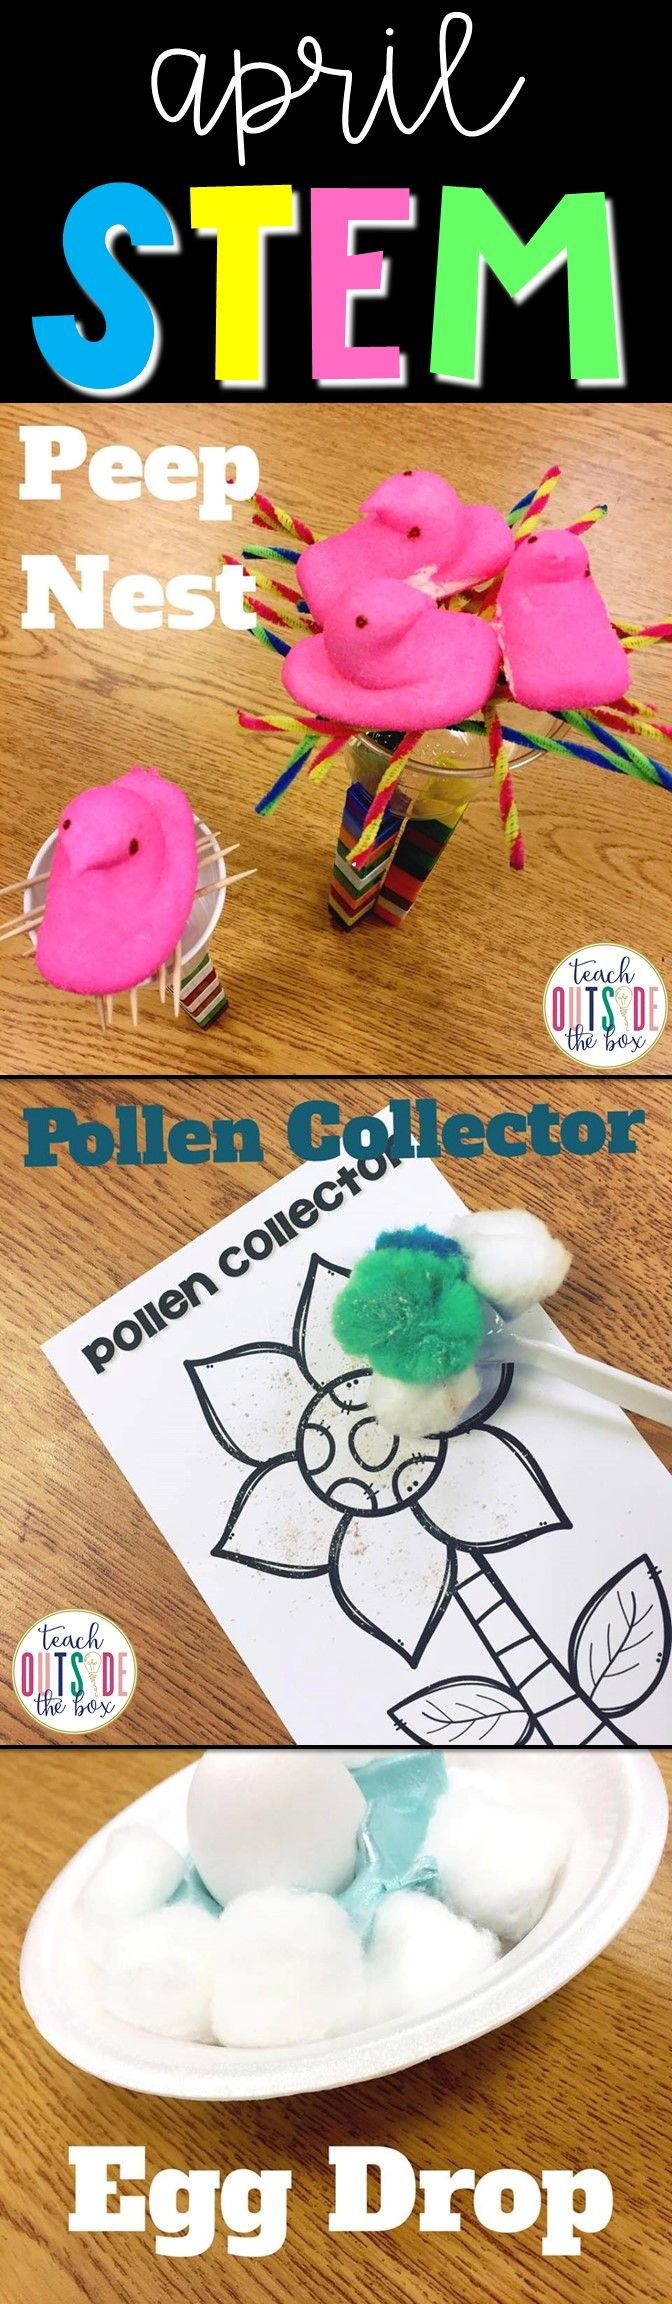 3 Low Prep Spring Themed STEM Challenges: Peep's Nest, Pollen Collector, Egg Drop | Easter STEM Activities | Elementary STEM | April STEM Challenges | Kindergarten, First Grade, Second Grade, Third Grade, Fourth Grade, Fifth Grade